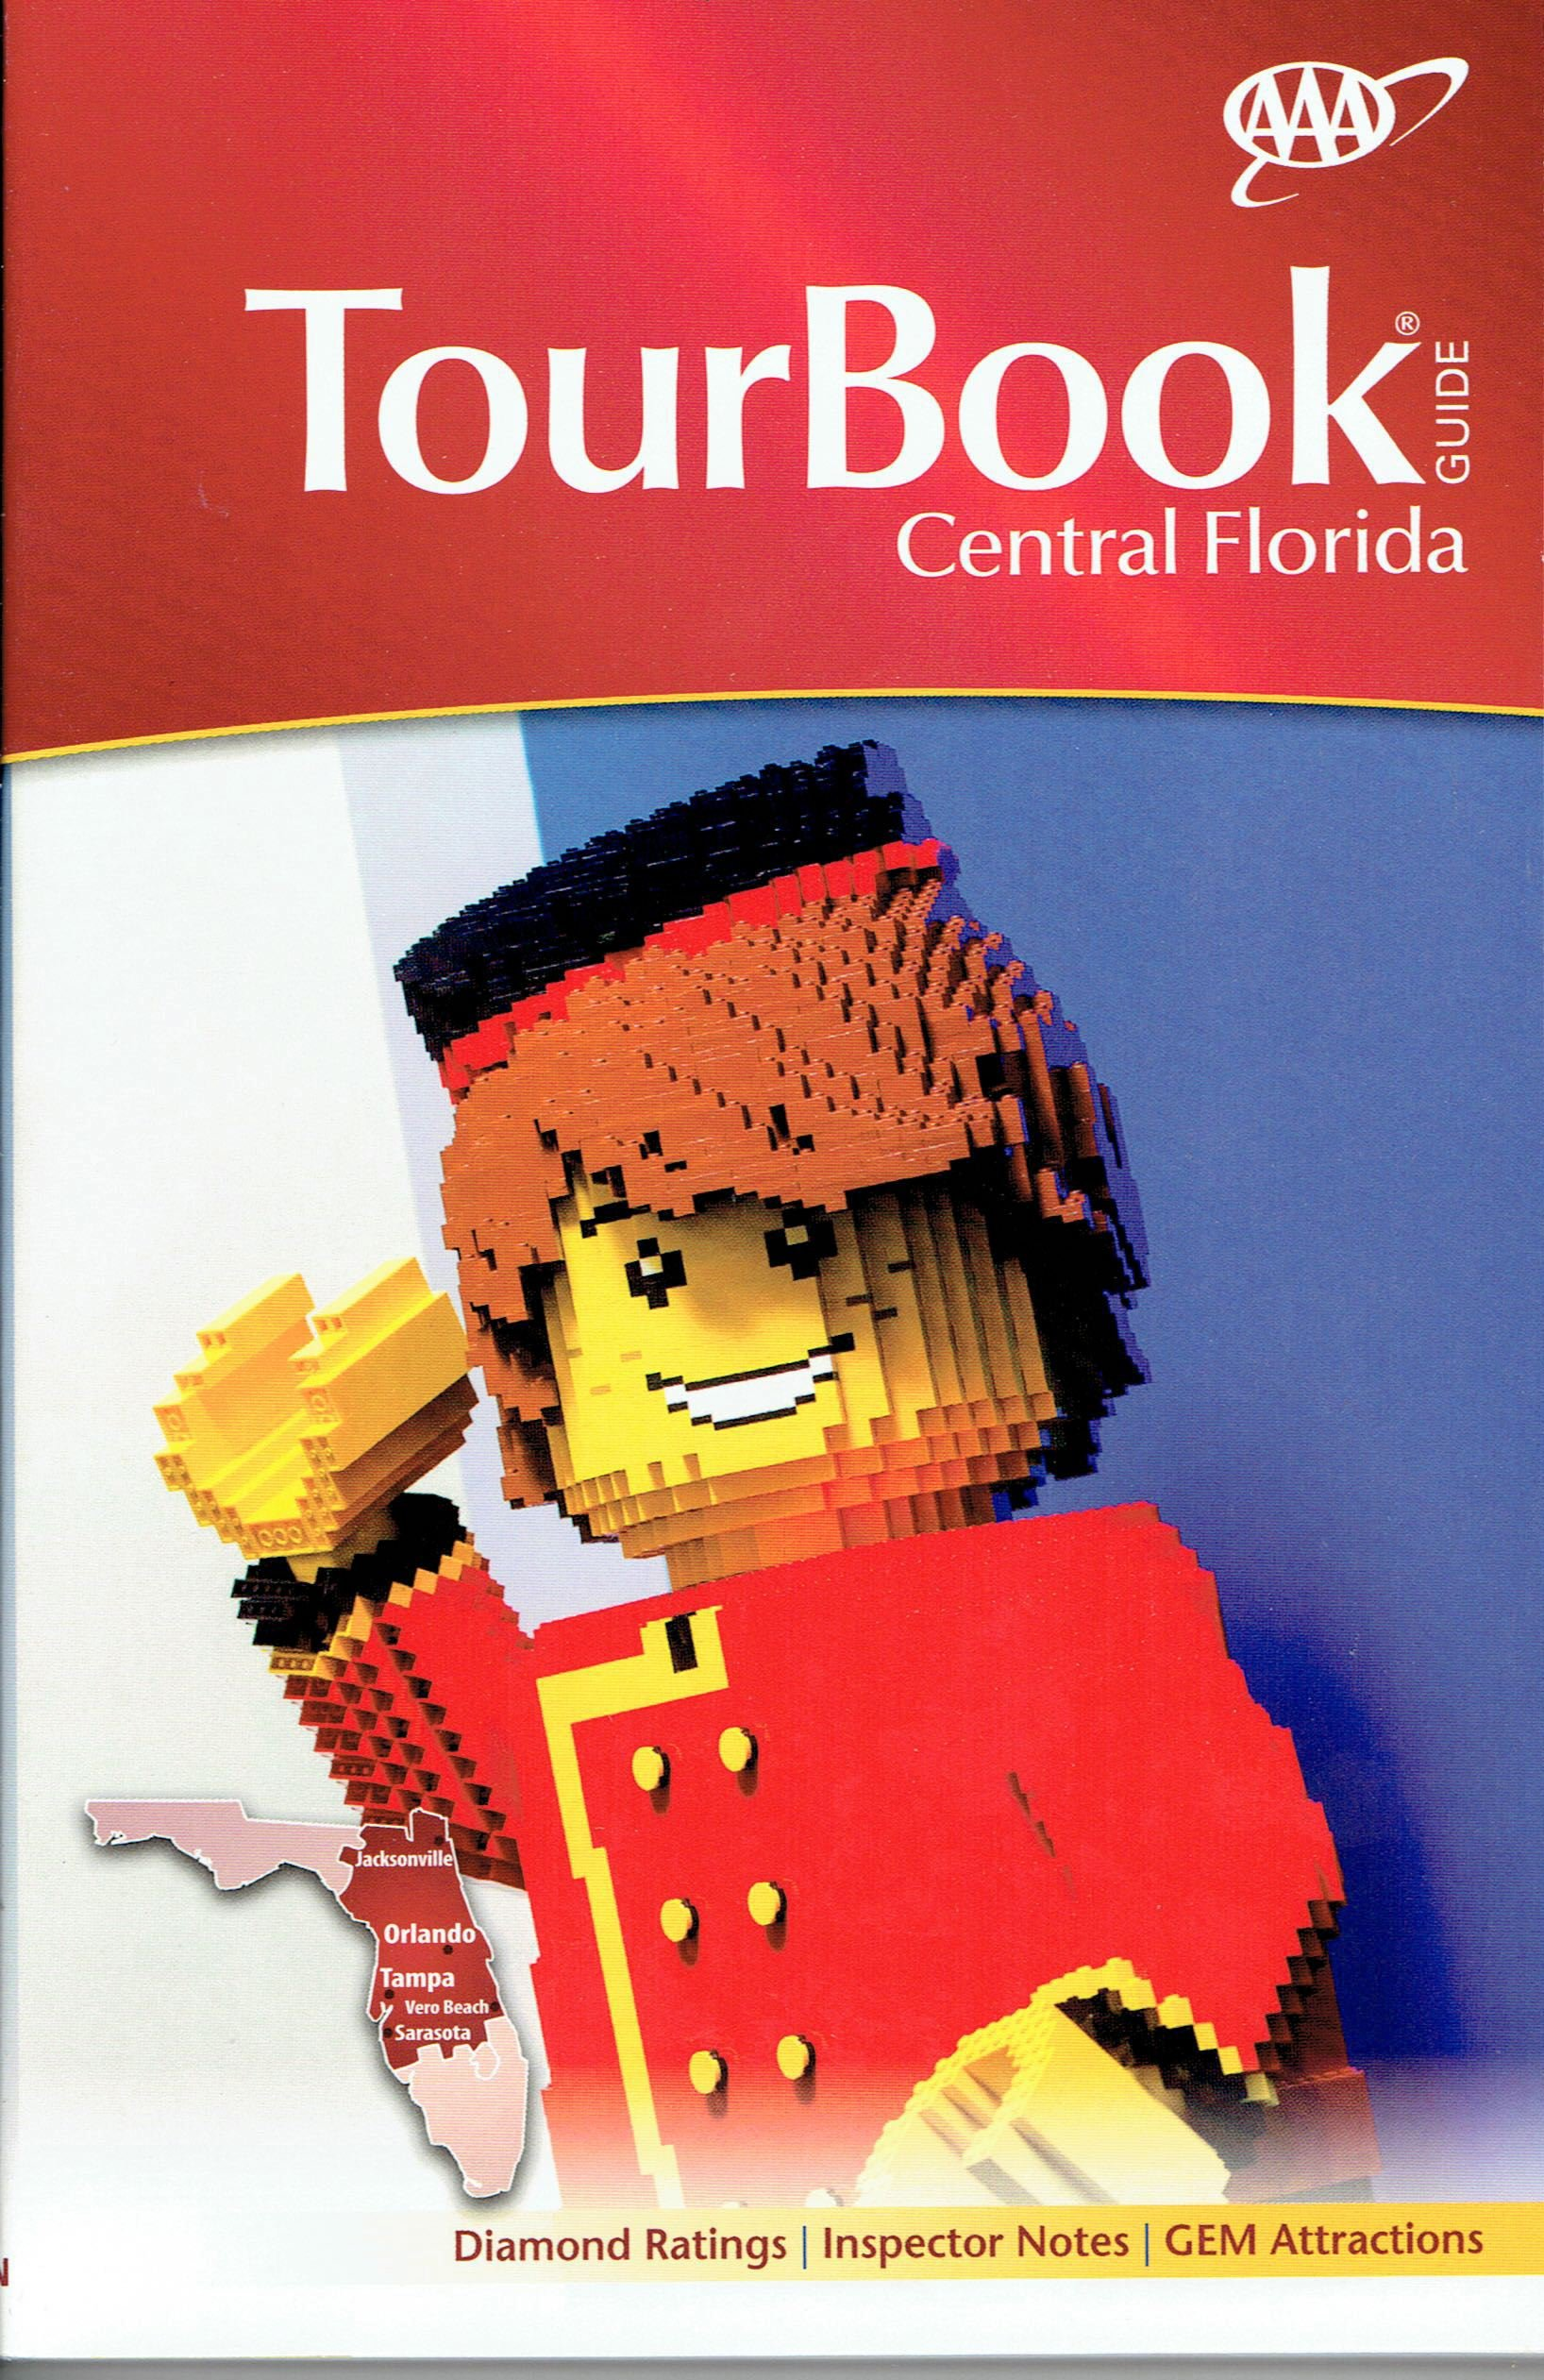 Read Online Central Florida Tour Book Guide 2017 AAA Look up any town/city to find/compare nearly all hotels, restaurants, attractions with ratings, inspector notes, recommendations. 494 page TourBook pdf epub